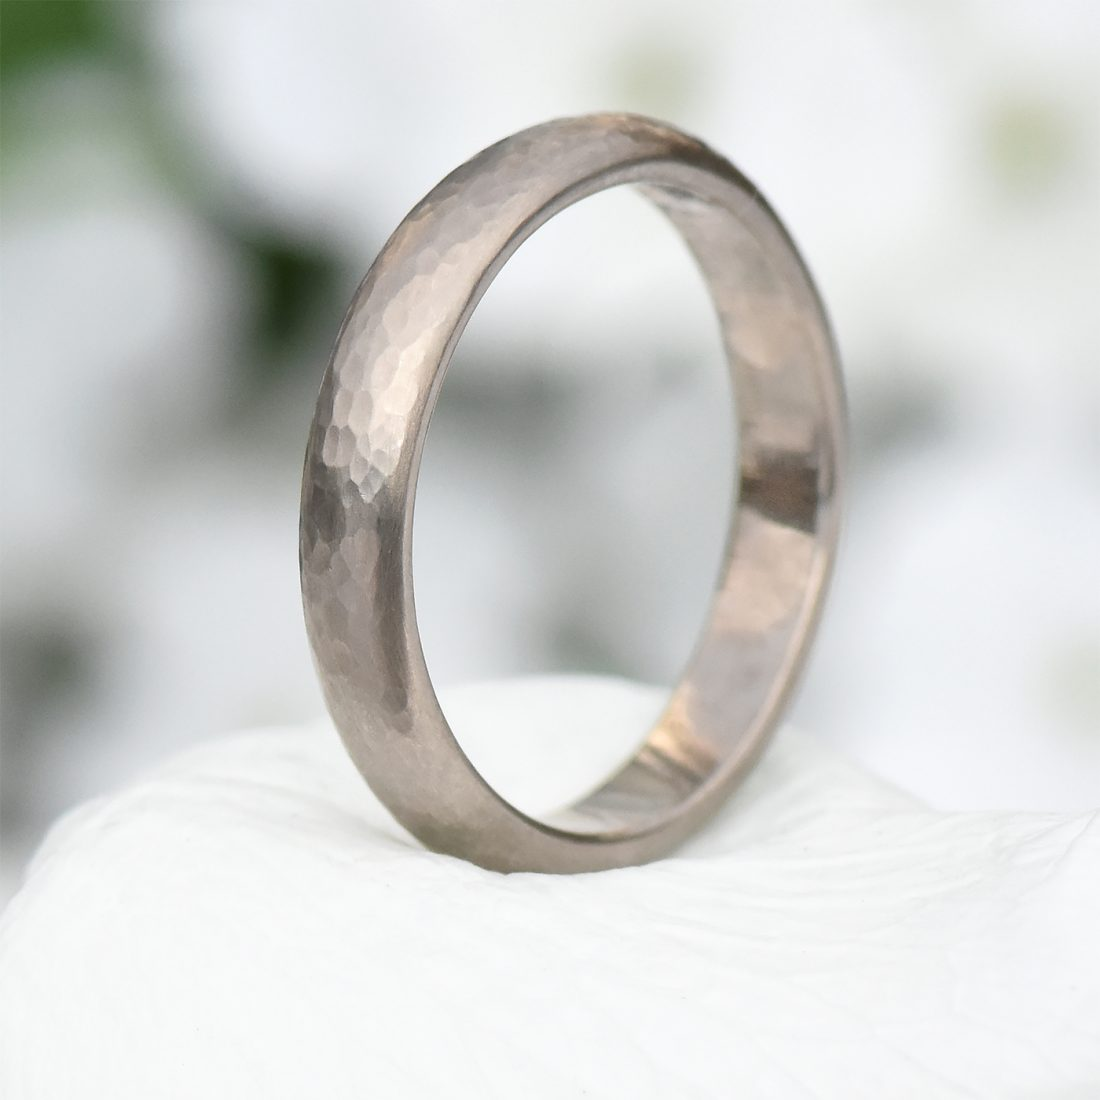 4mm hammered wedding ring in white gold